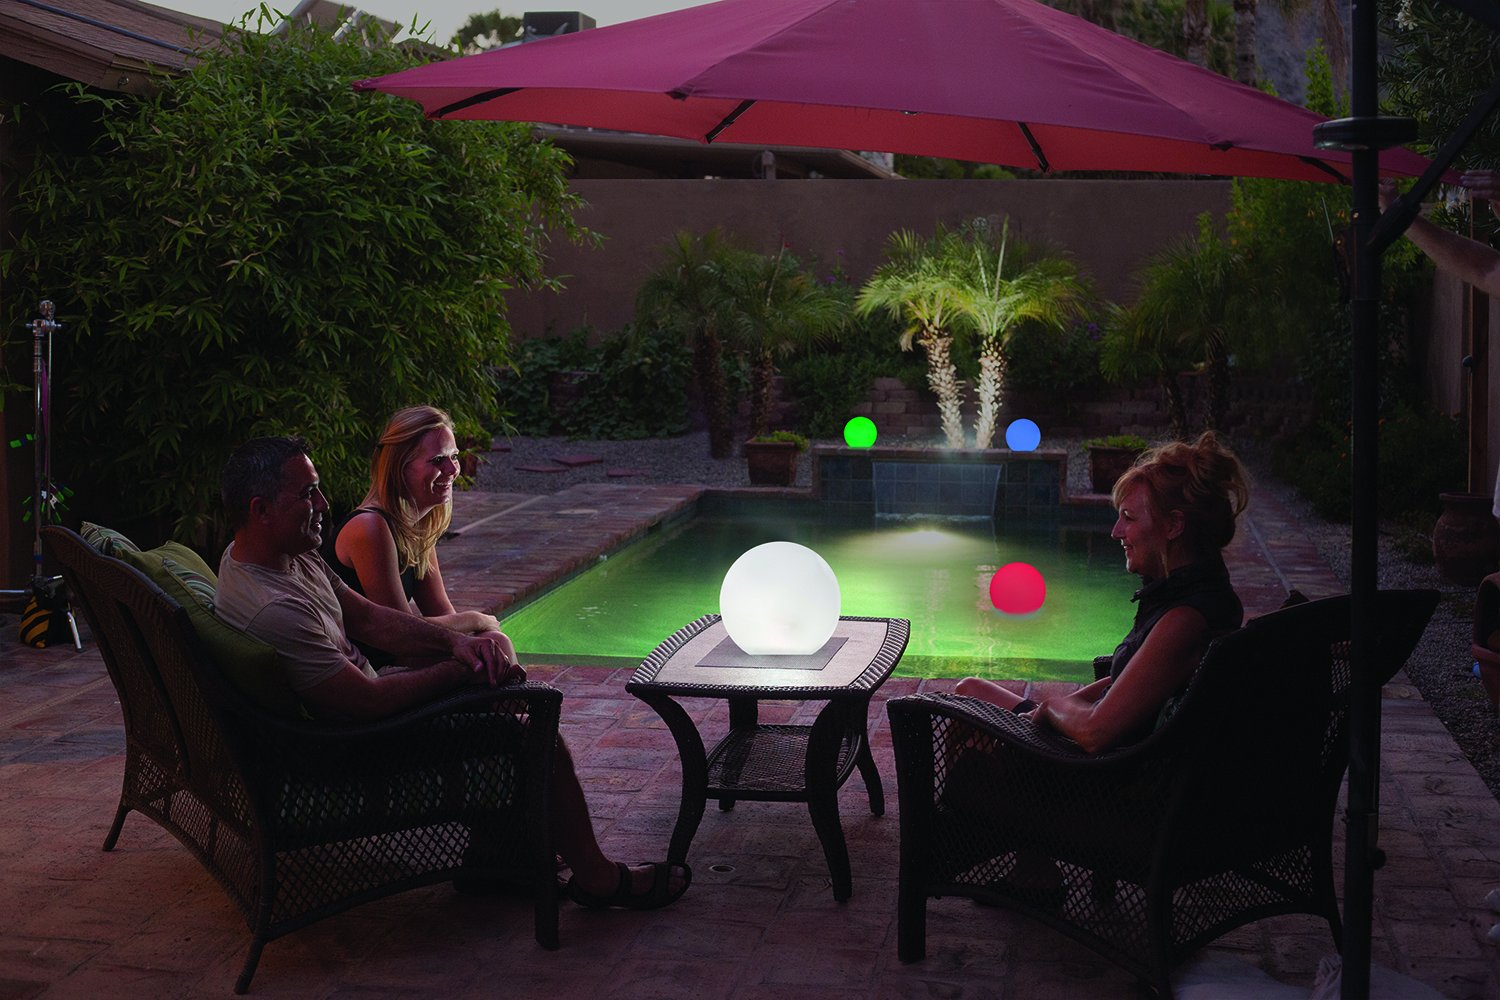 GalaxyGLO 9 inch Solar Powered Color Changing Globe for Pool or Patio - 2 pack by Sunsolar (Image #2)